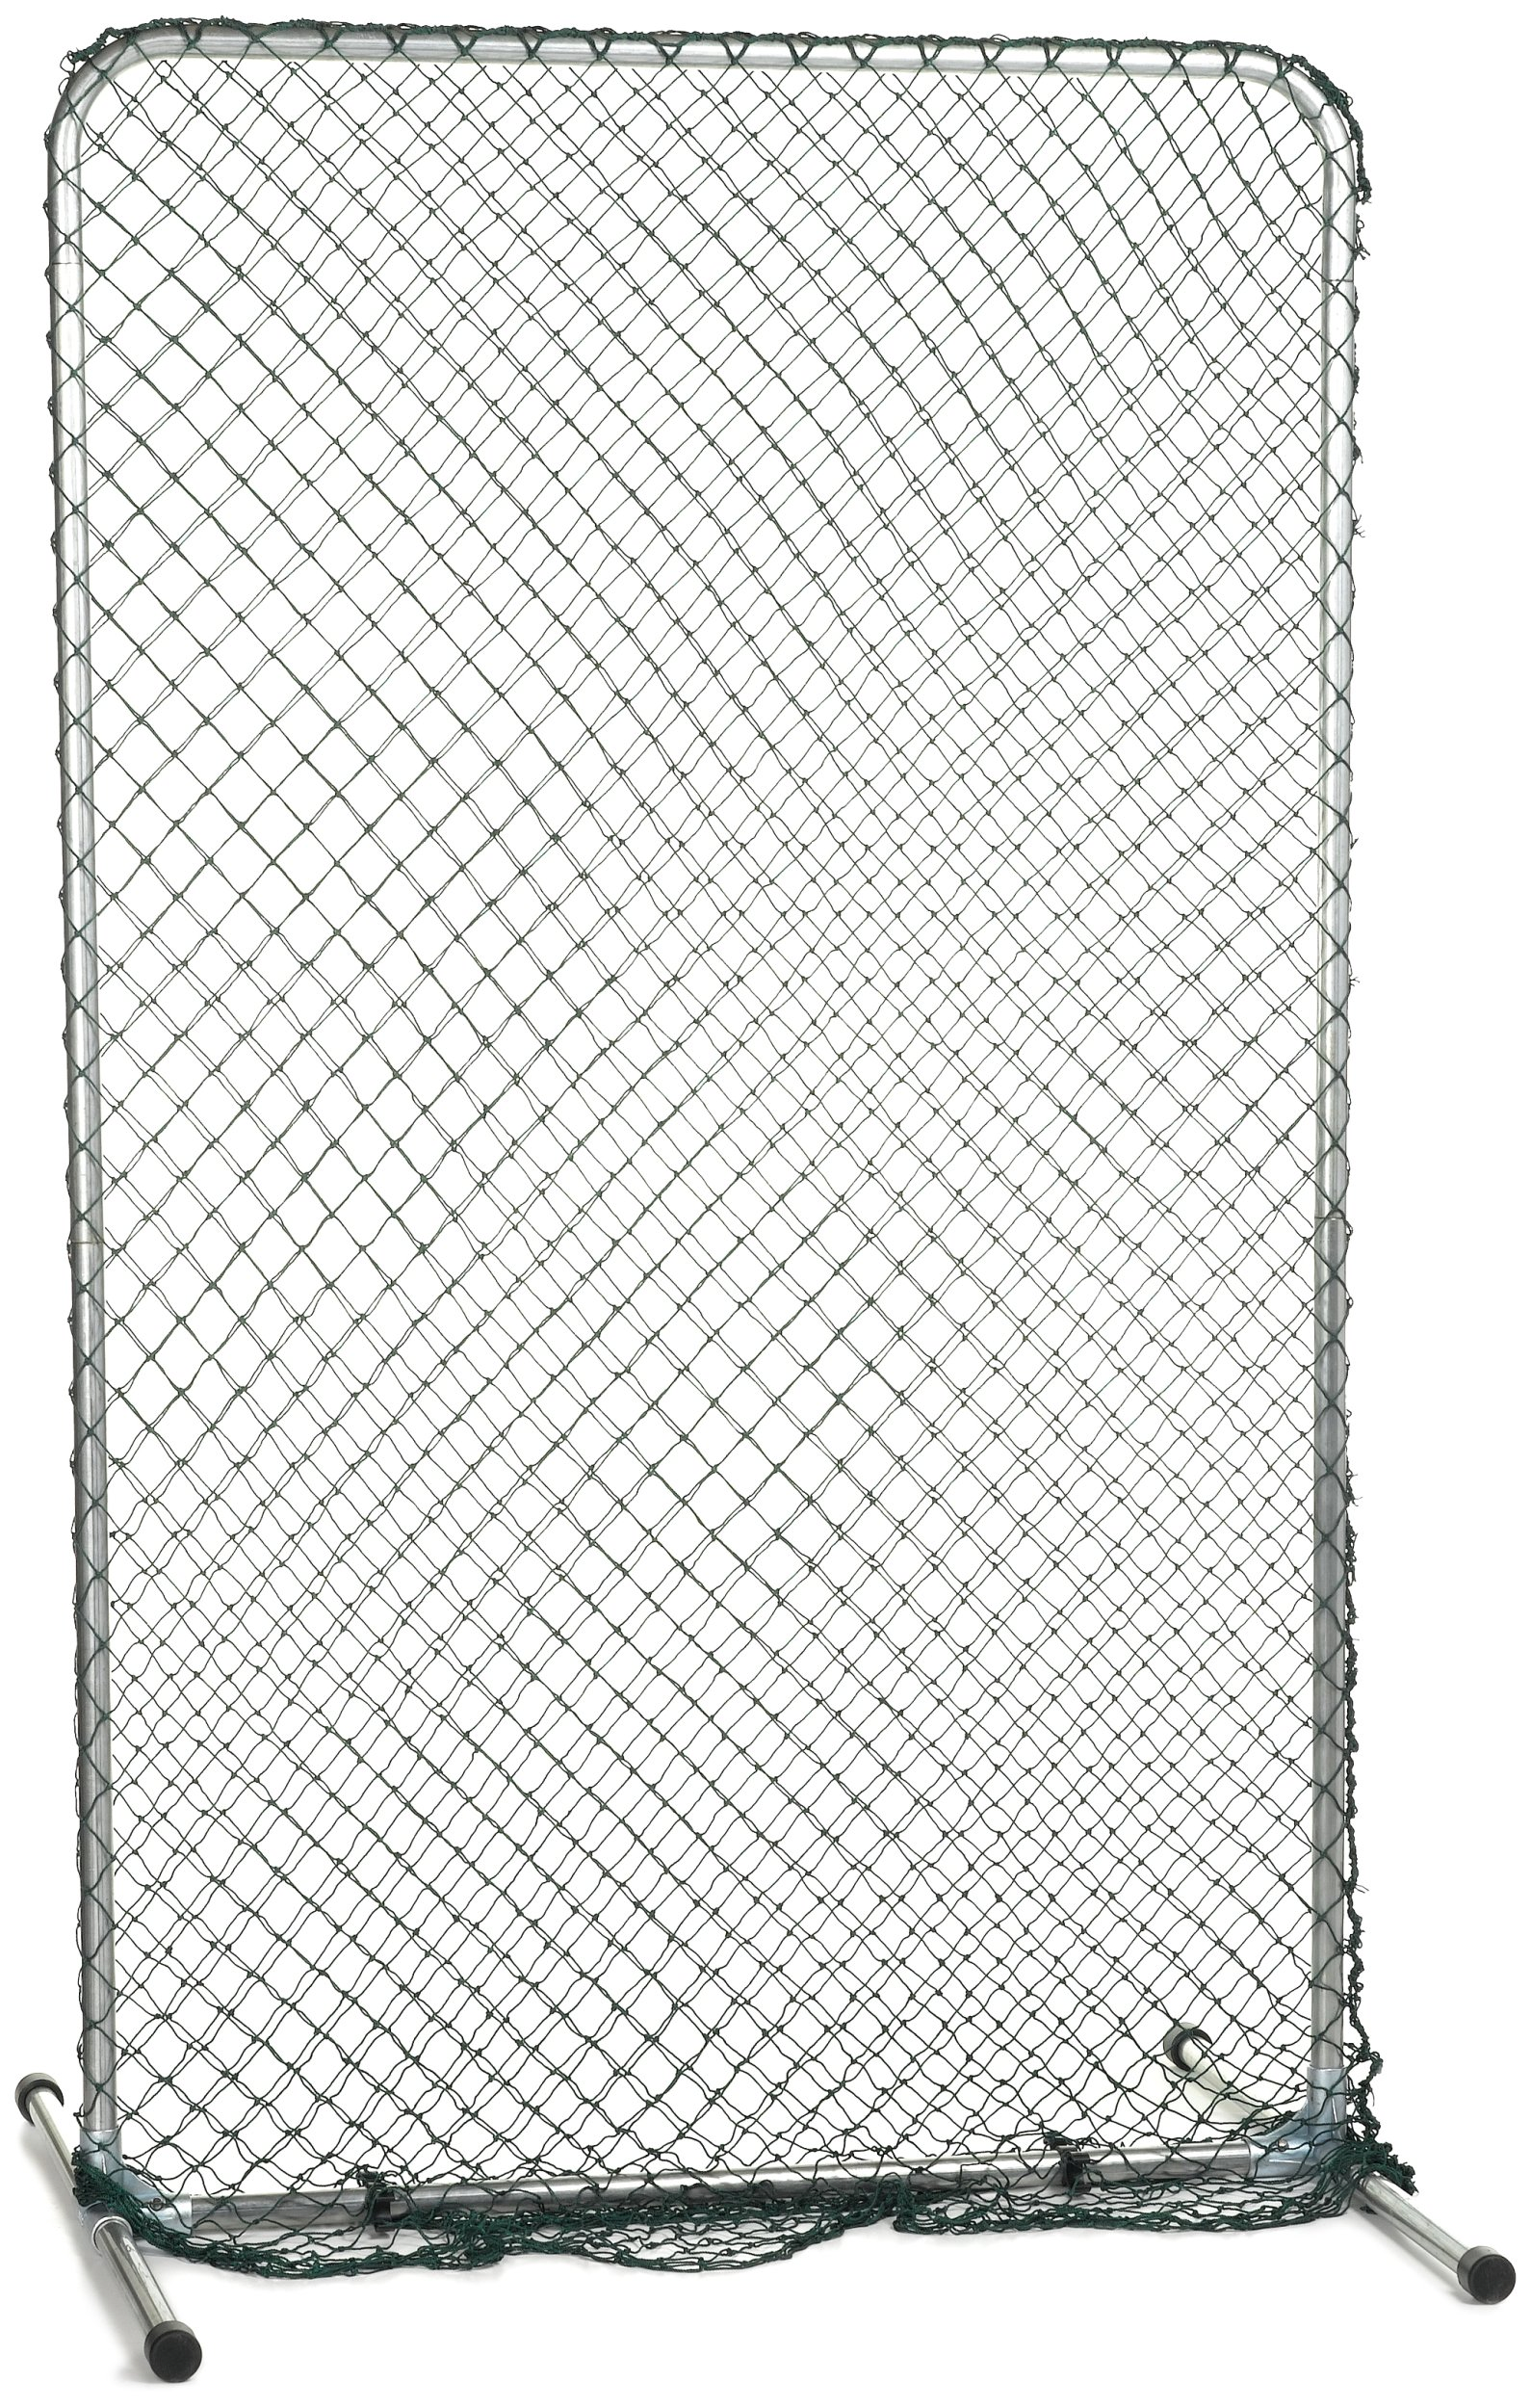 JUGS Quick-Snap Lite-Flite/Slowpitch Protective Screen